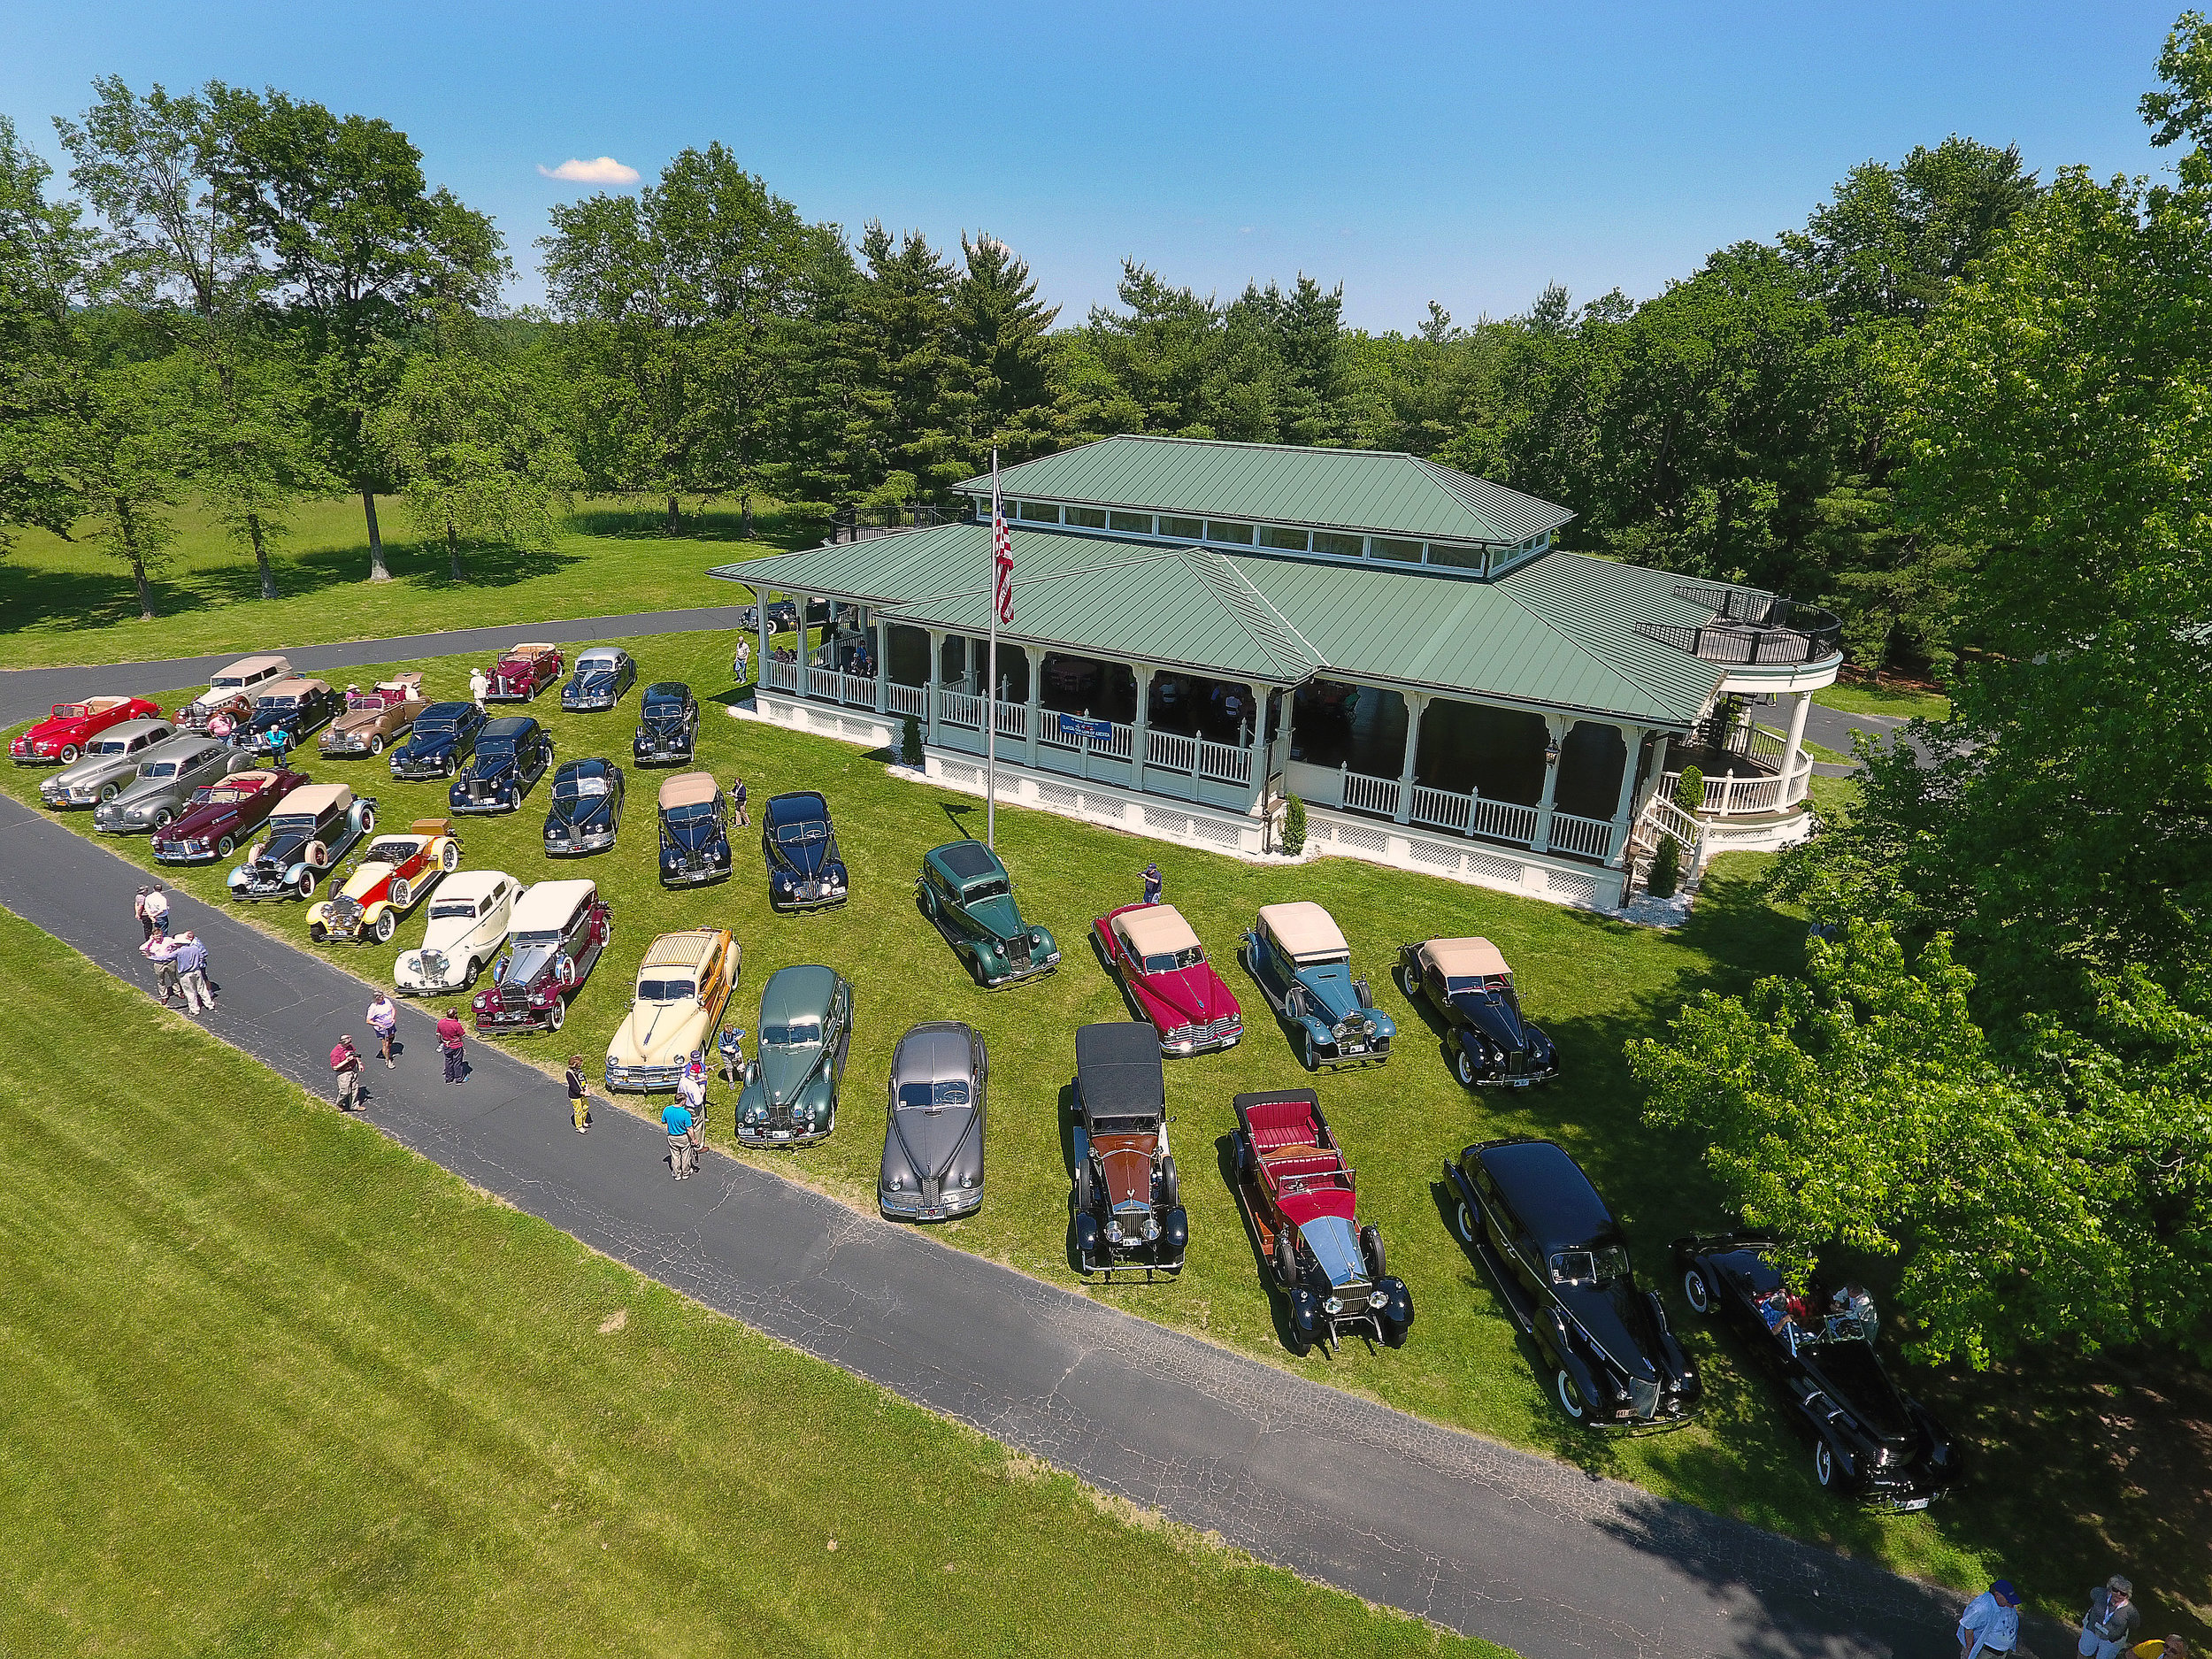 Dramatic aerial drone photo of Classics on the front lawn of the Pavilion.